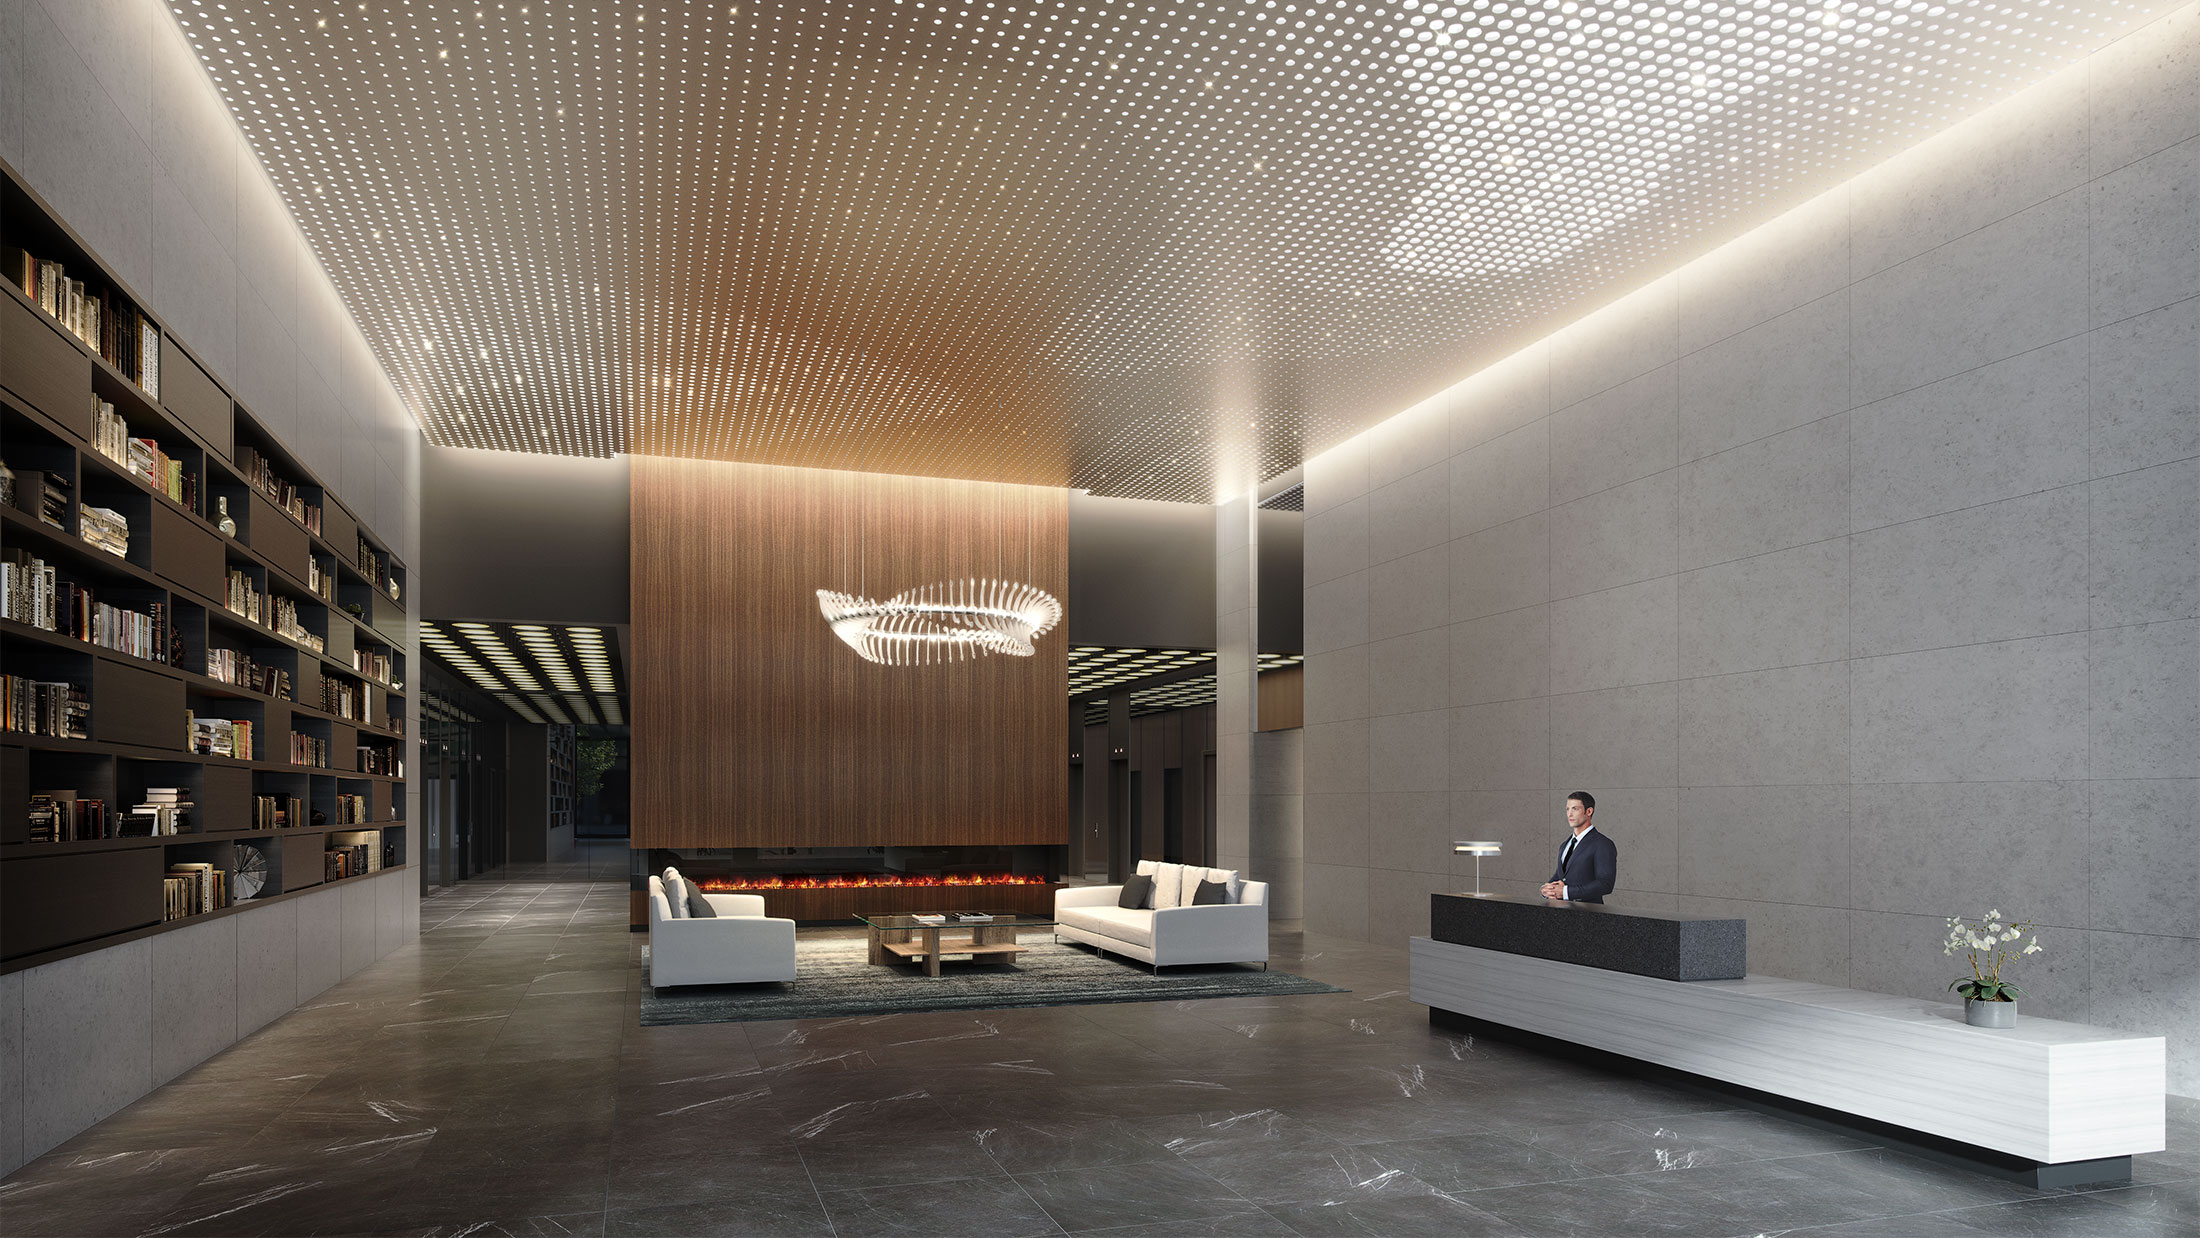 Architectural Rendering of the lobby of the 180 Water Street project located in the Financial District, New York City